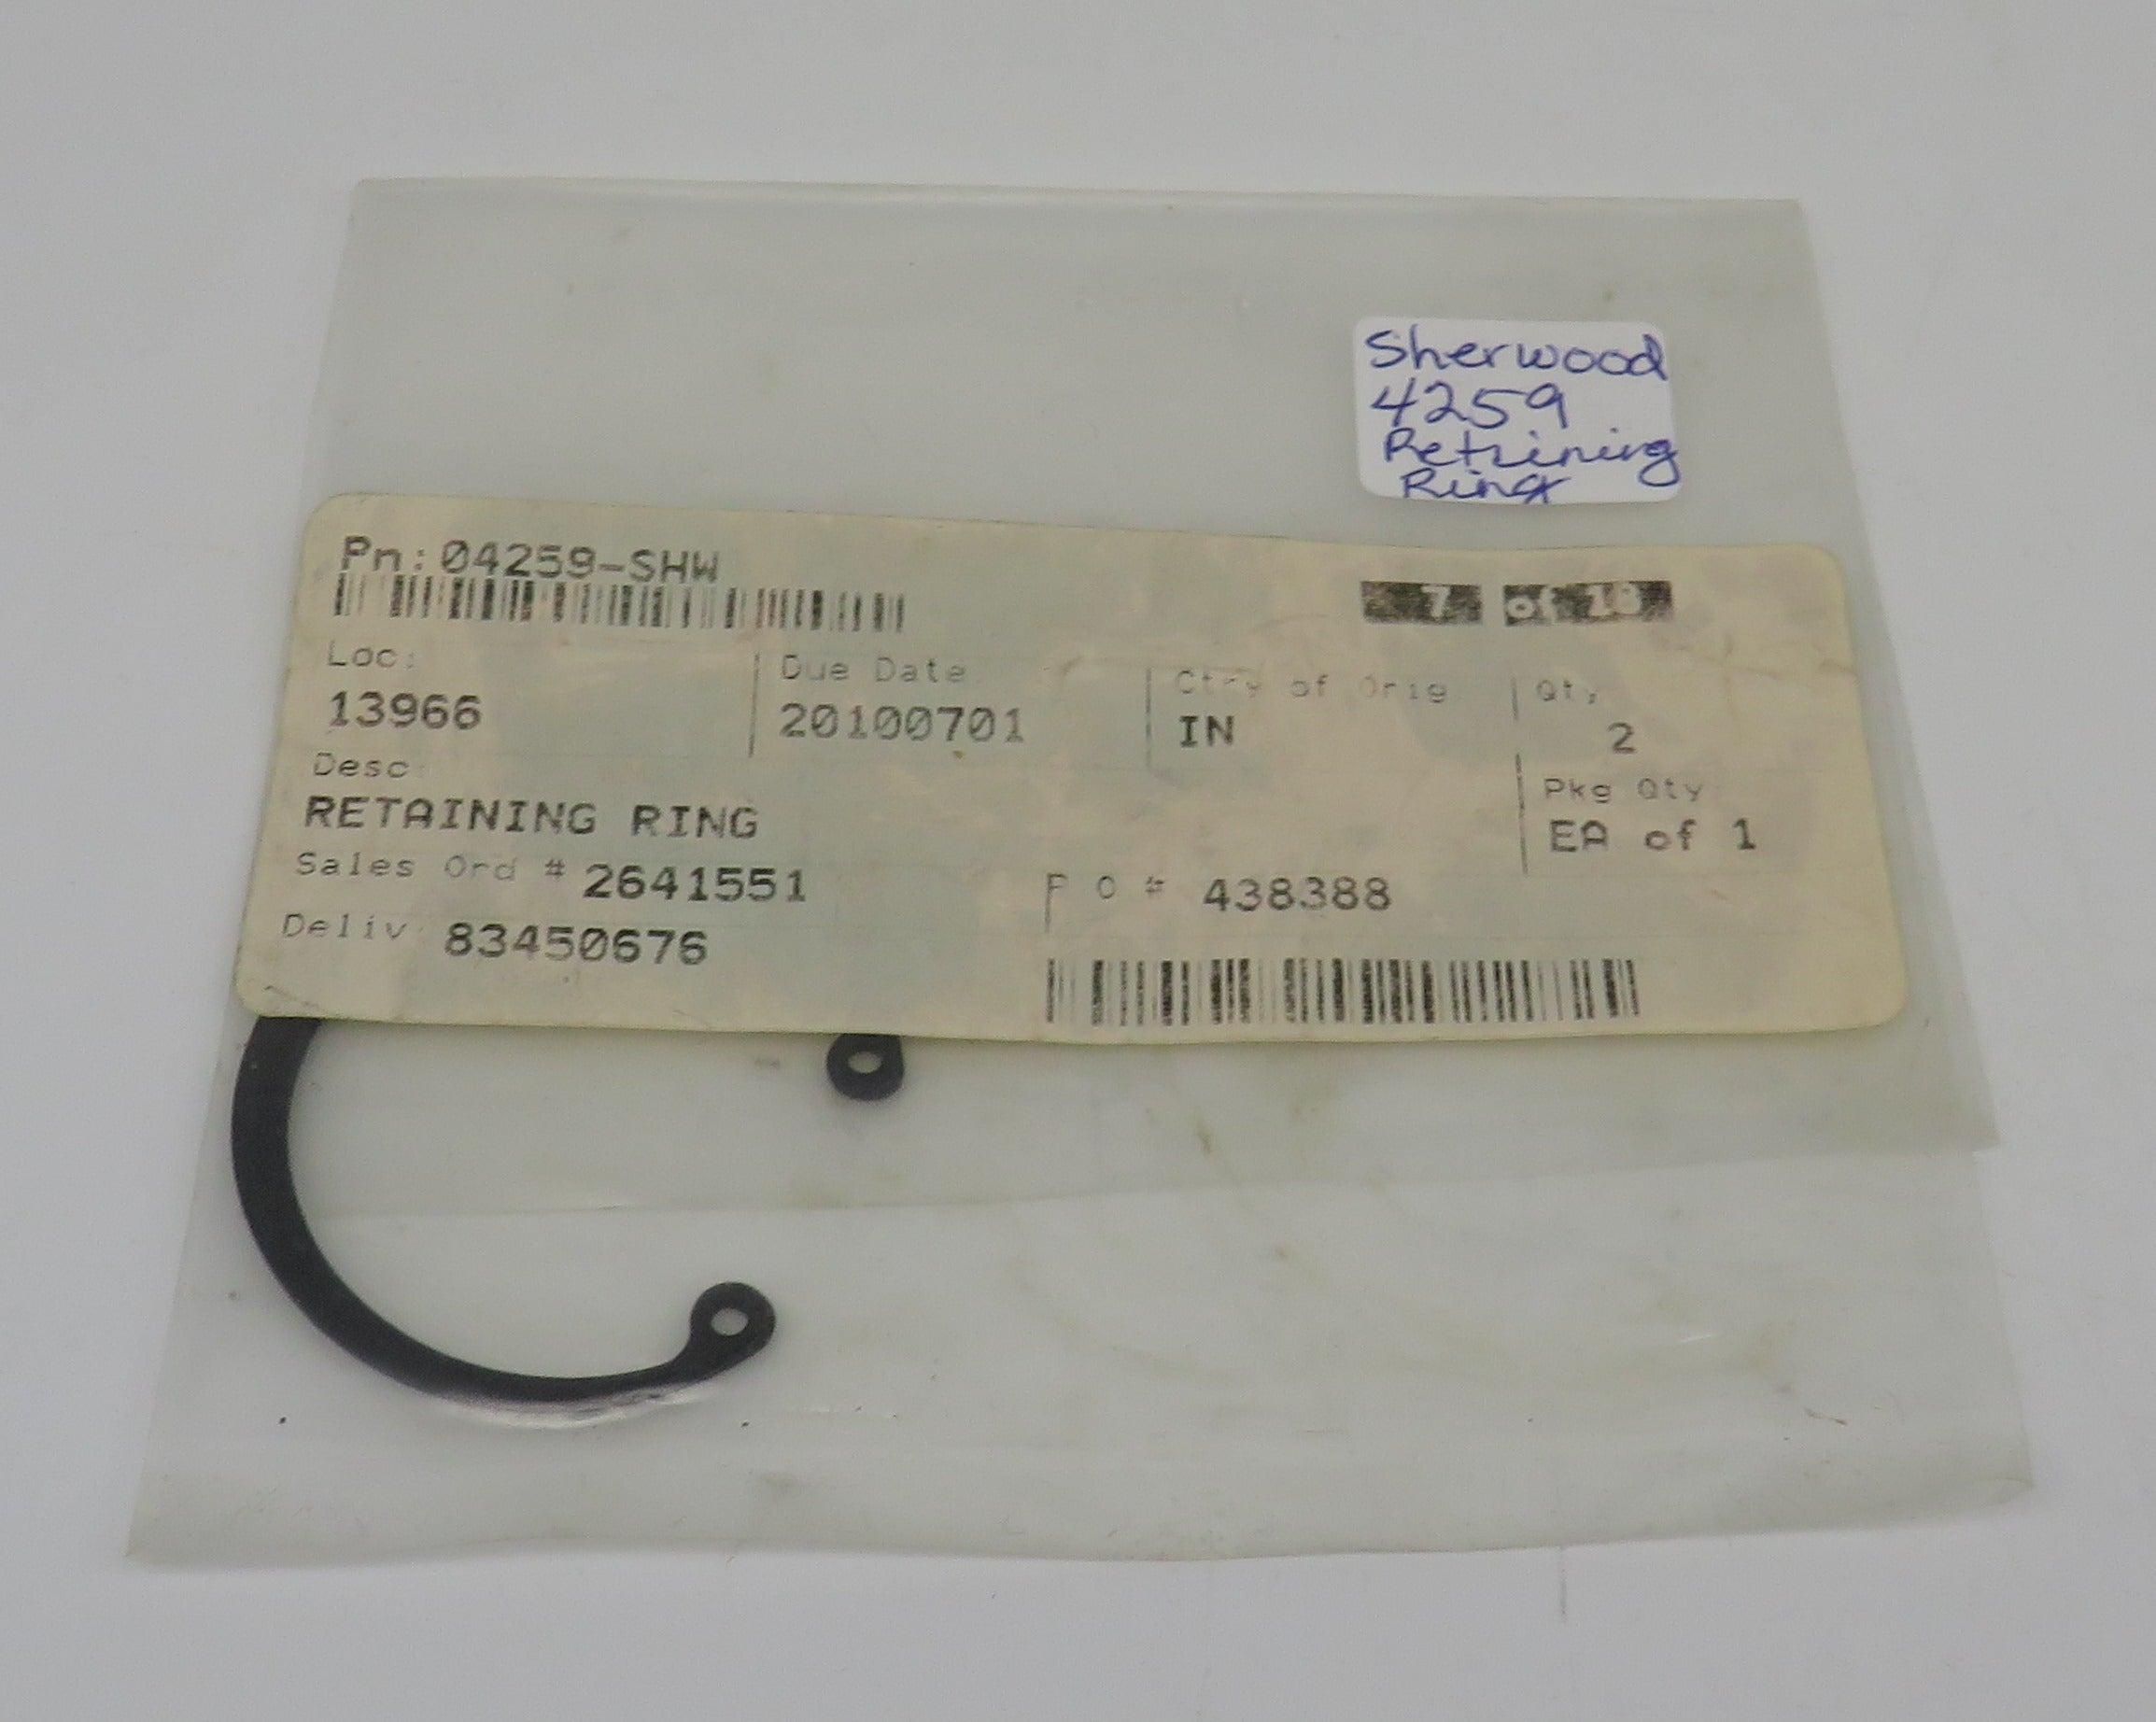 4259 Sherwood Retaining Ring (Snap Ring)